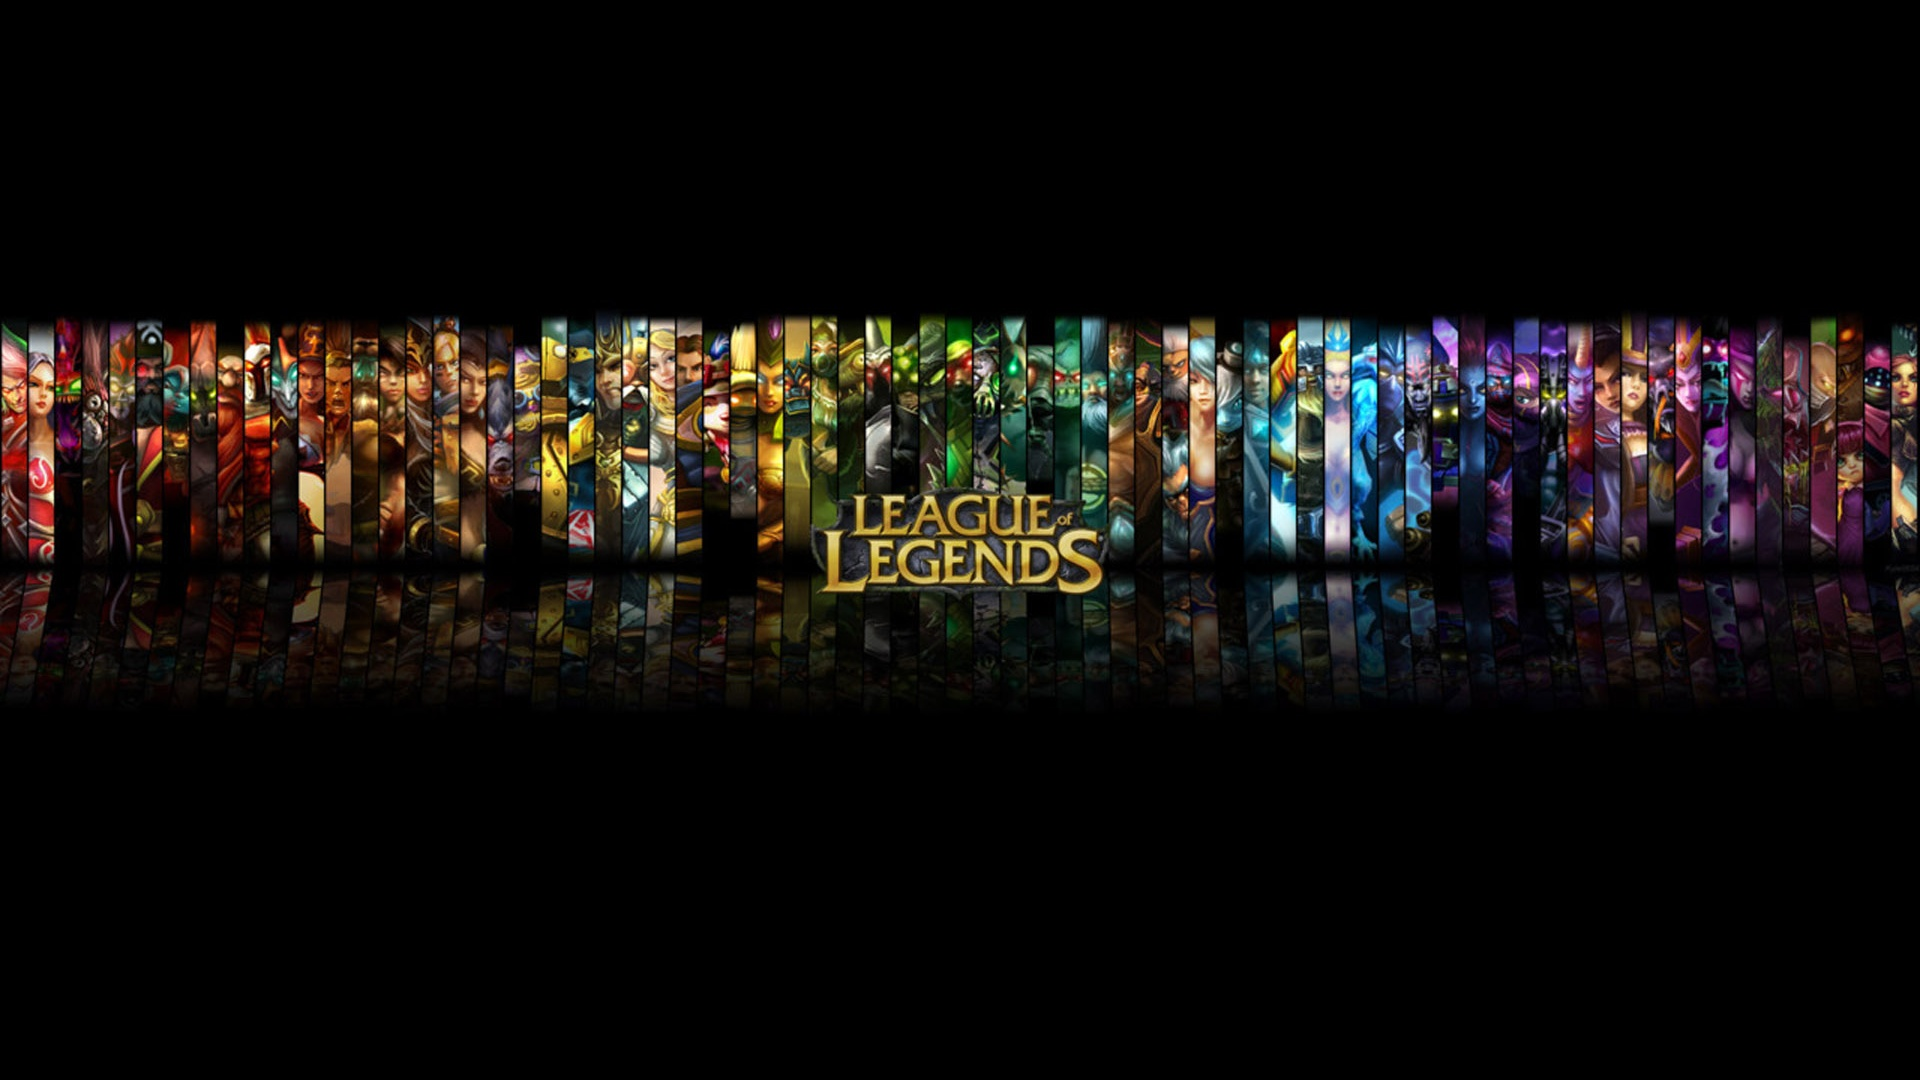 League Of Legends Wallpaper 1920×1080 – Dota 2 and E-Sports Geeks